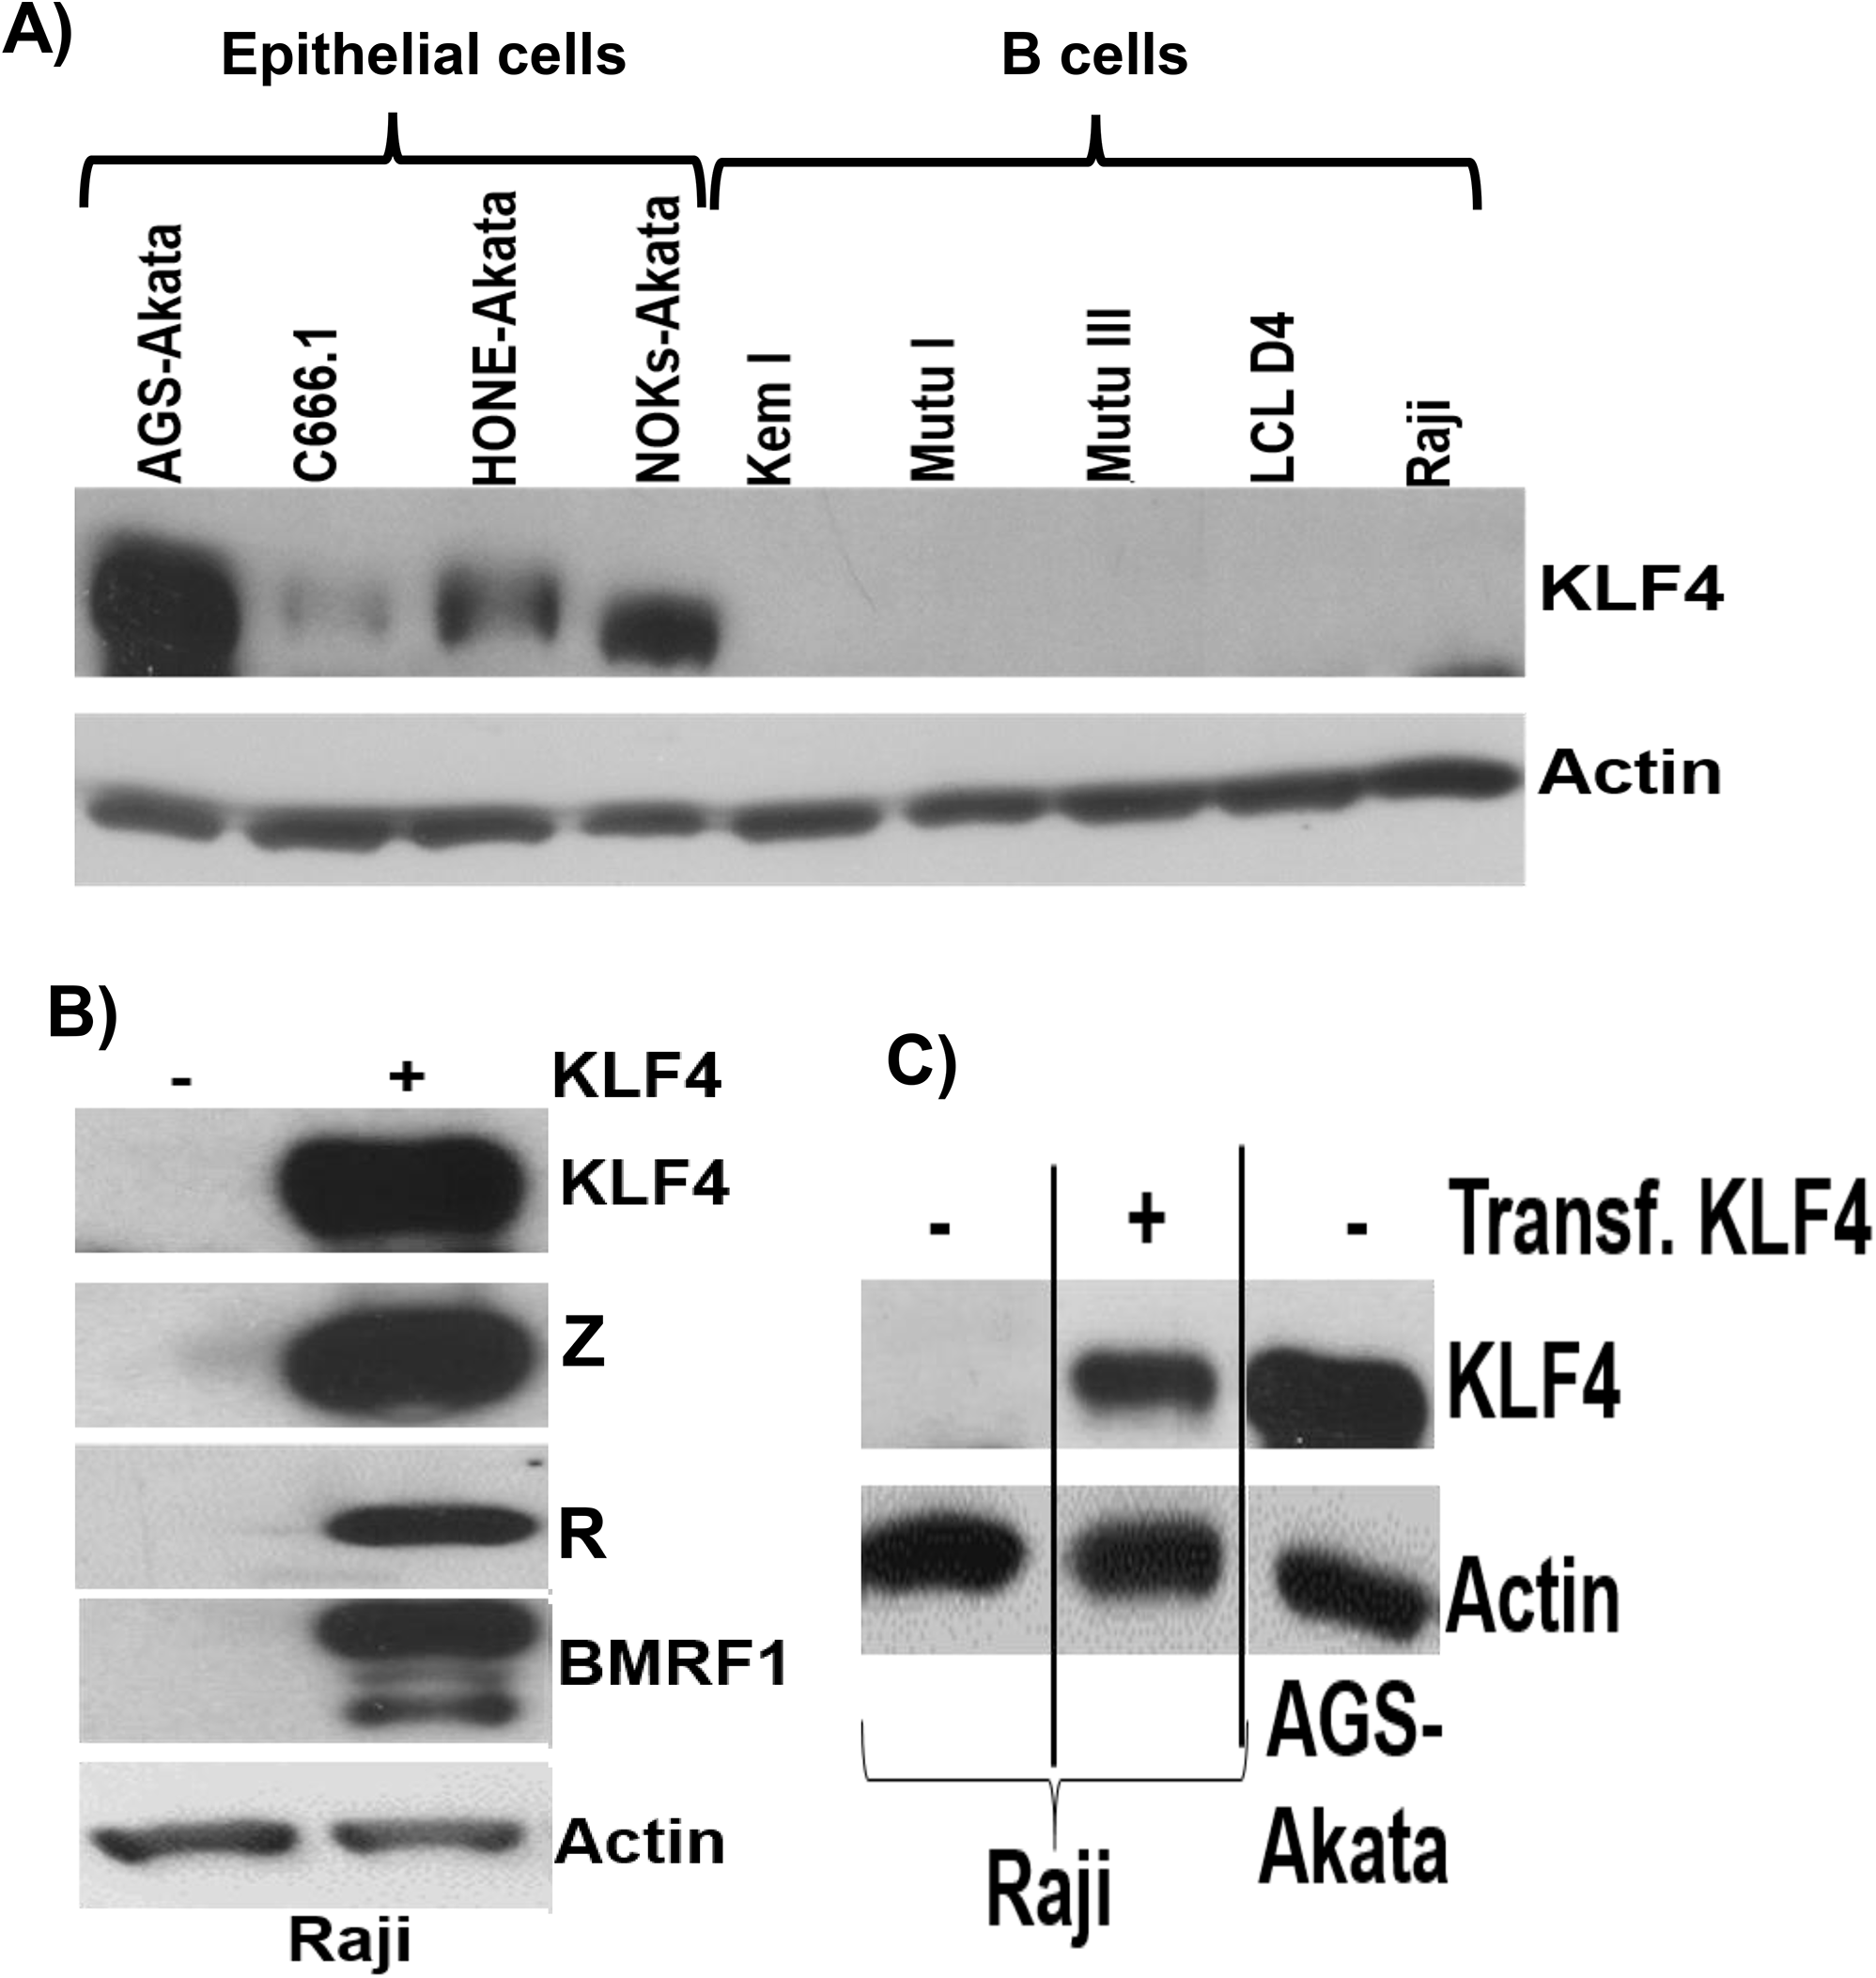 KLF4 is not expressed in B cells but can reactivate lytic EBV gene expression in this cell type.